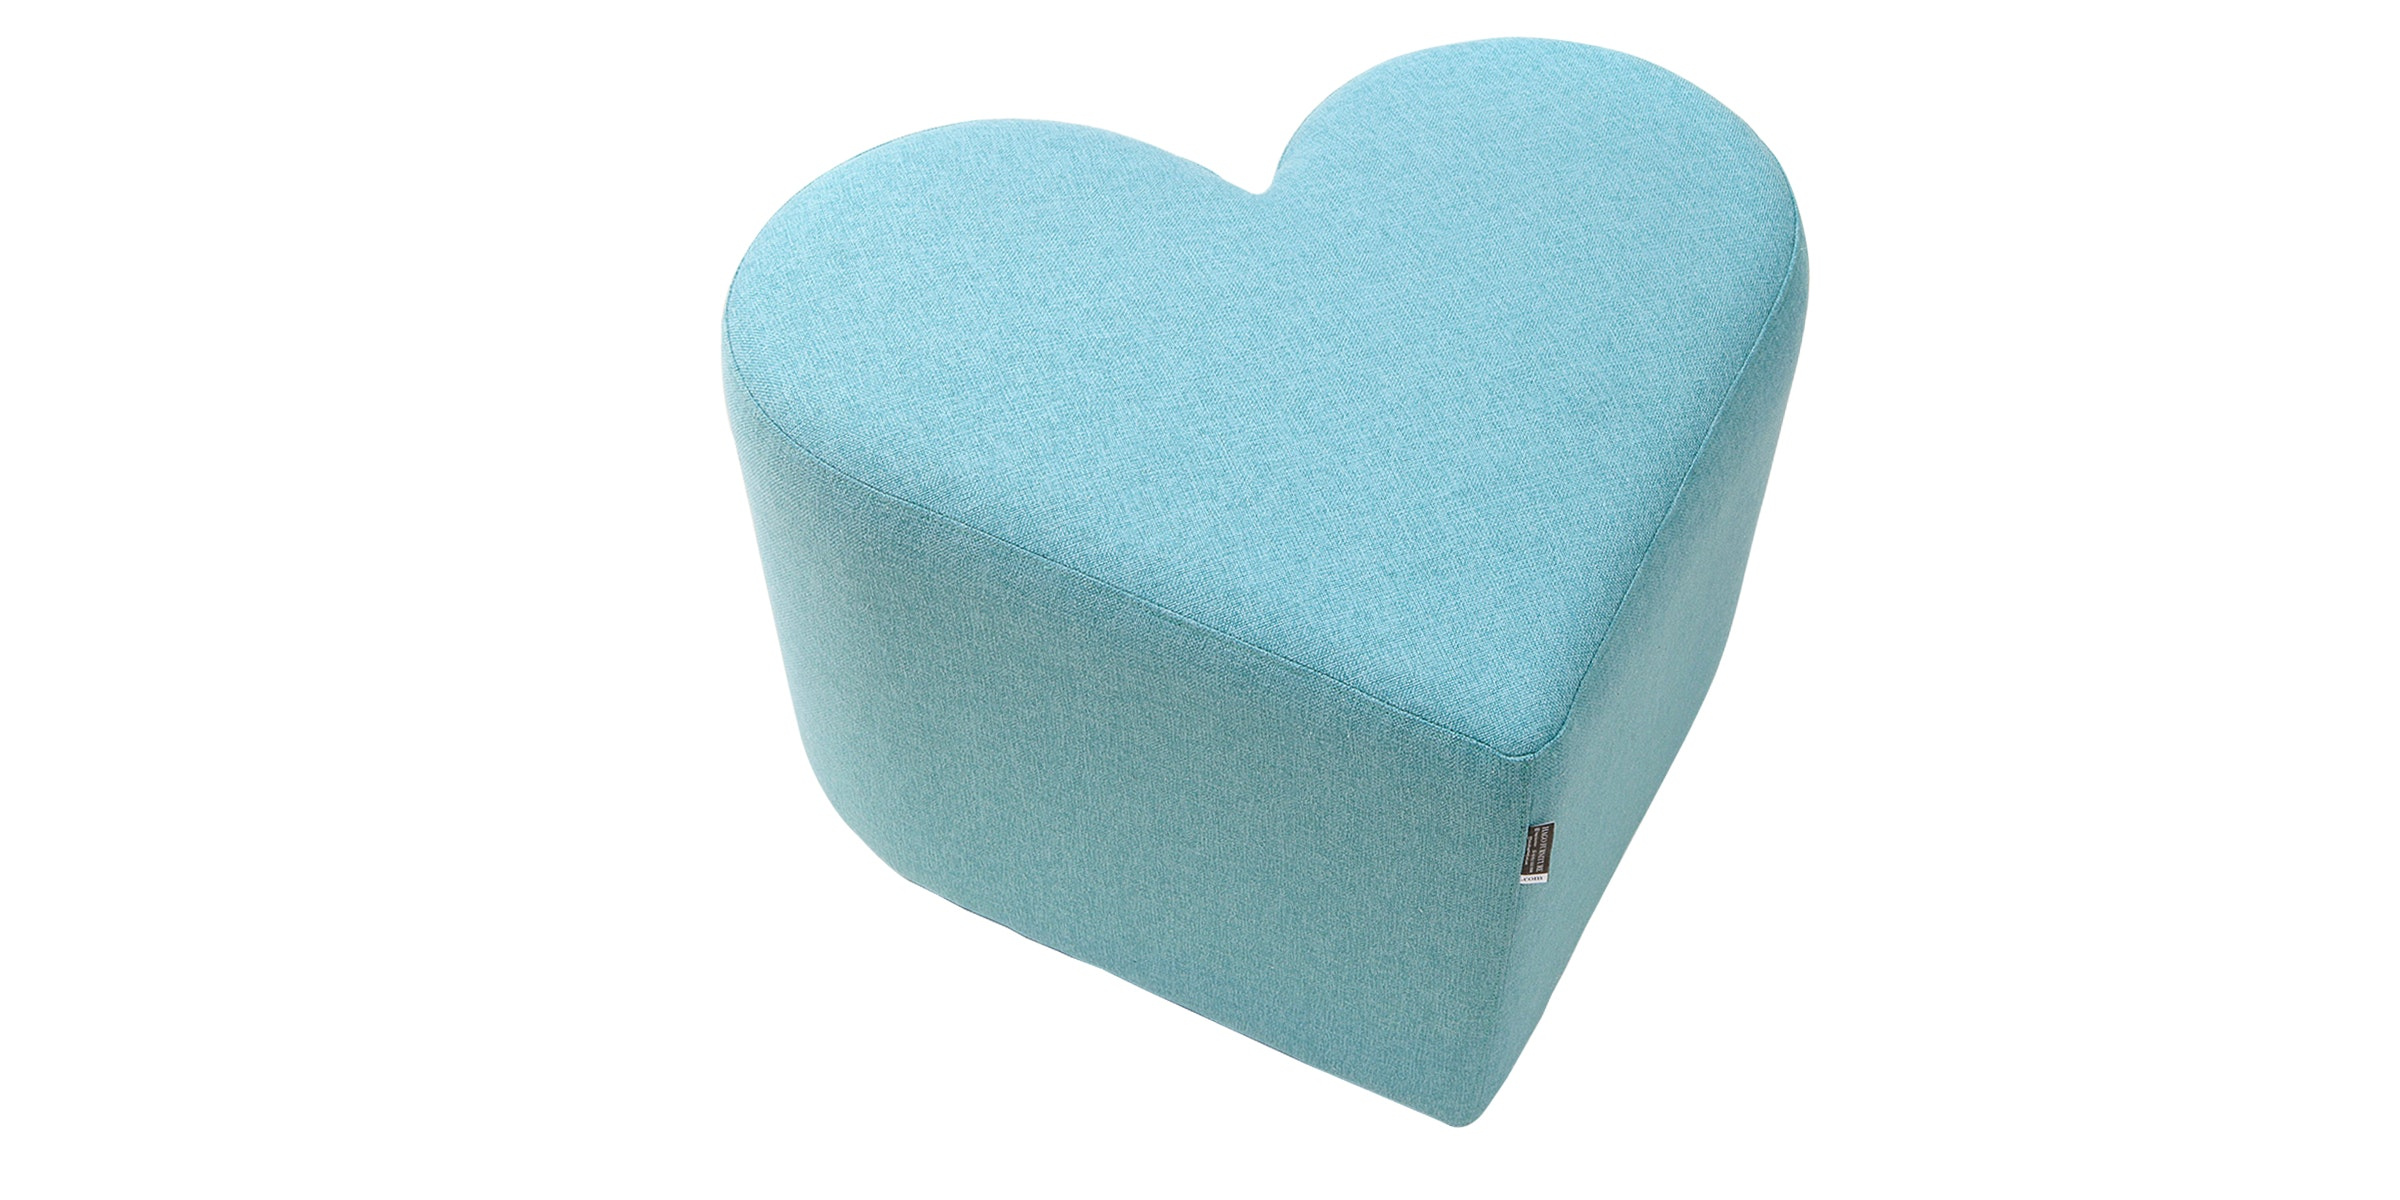 Hago Furniture Heart Unique Ottoman Hijau